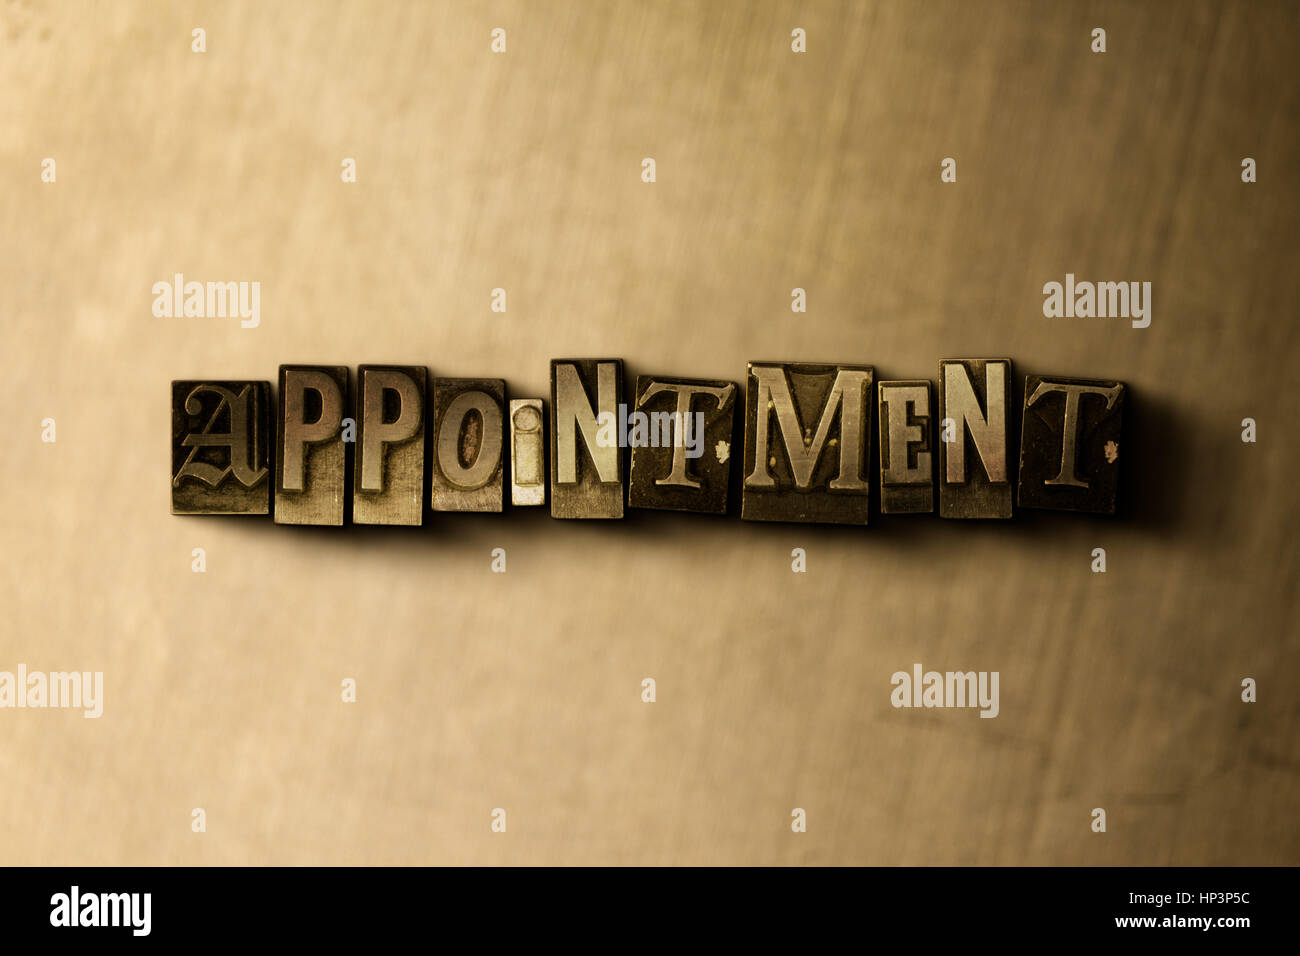 APPOINTMENT - close-up of grungy vintage typeset word on metal backdrop. Royalty free stock illustration.  Can be - Stock Image